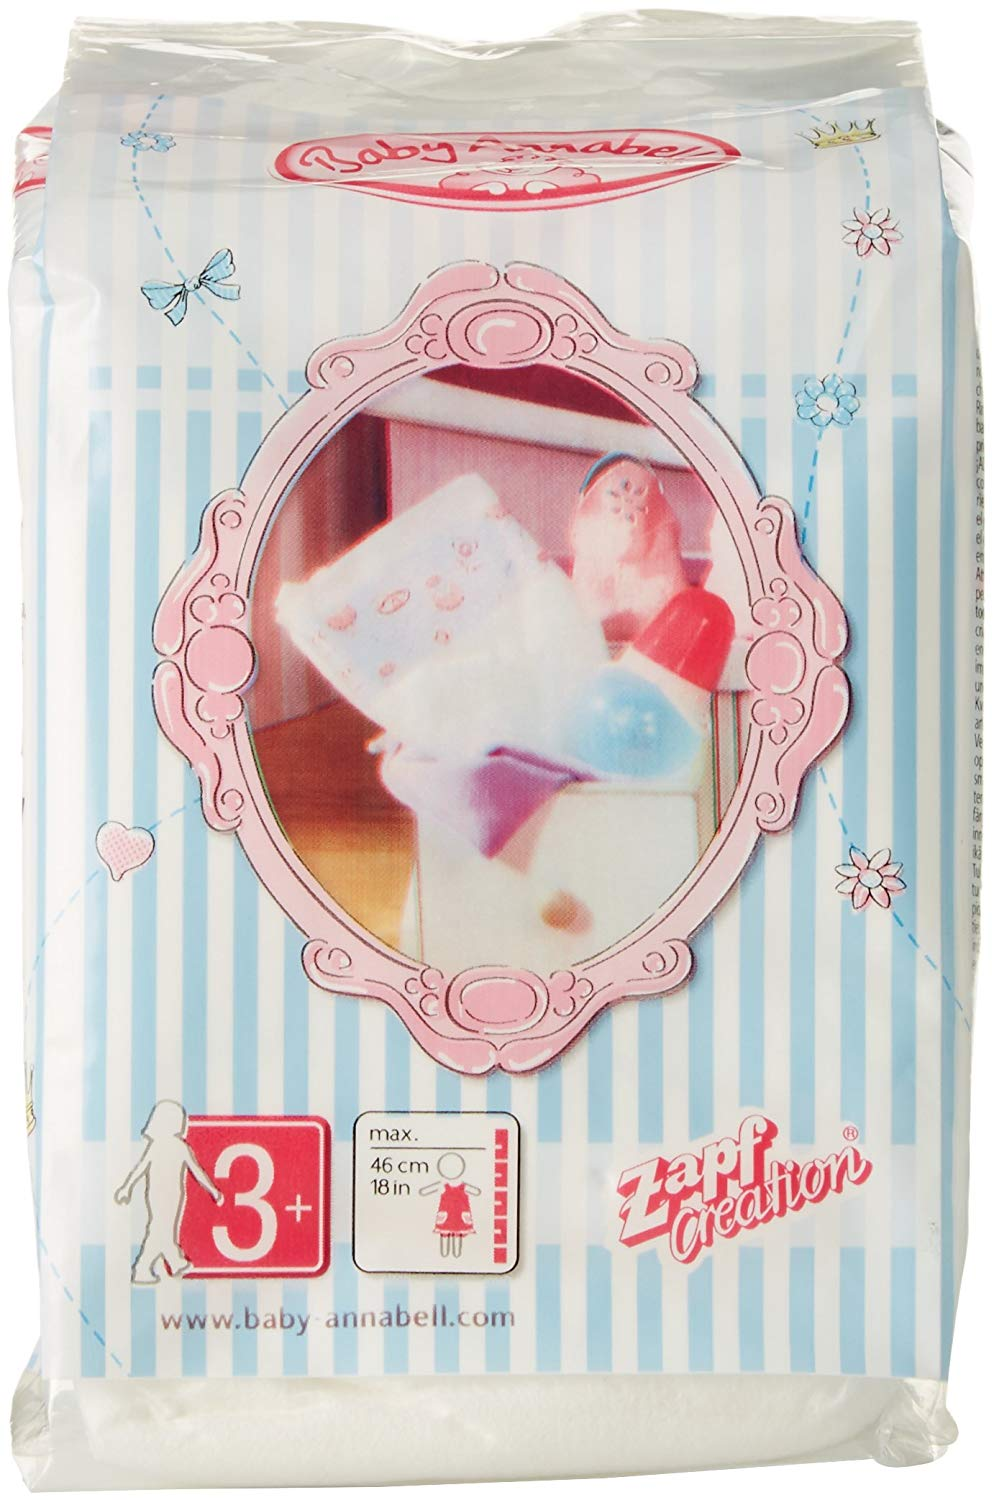 Baby Annabell 792308 Nappies, Multi-Colour - TopToy